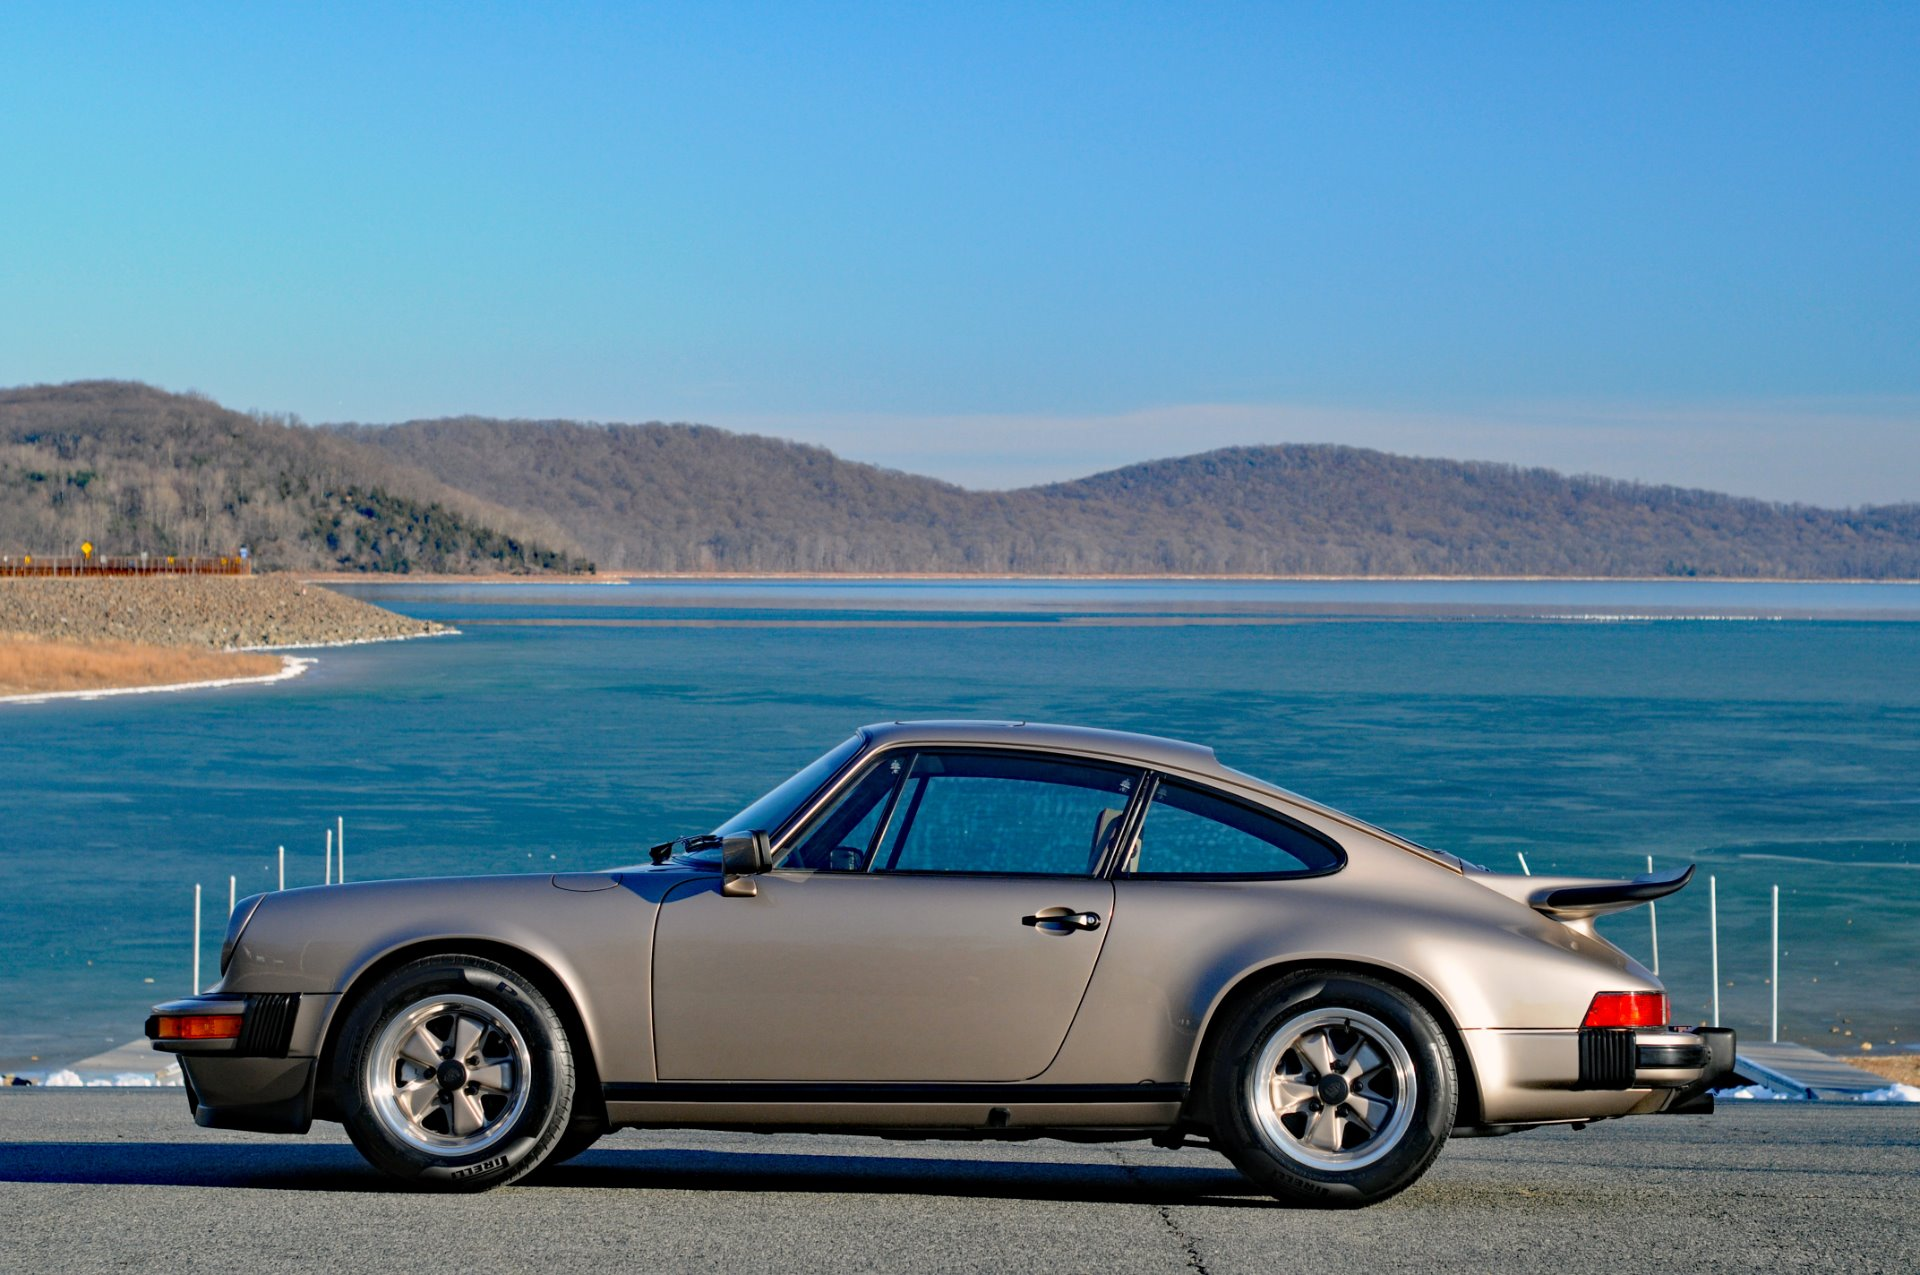 Used 1980 Porsche 911 SC Weissach